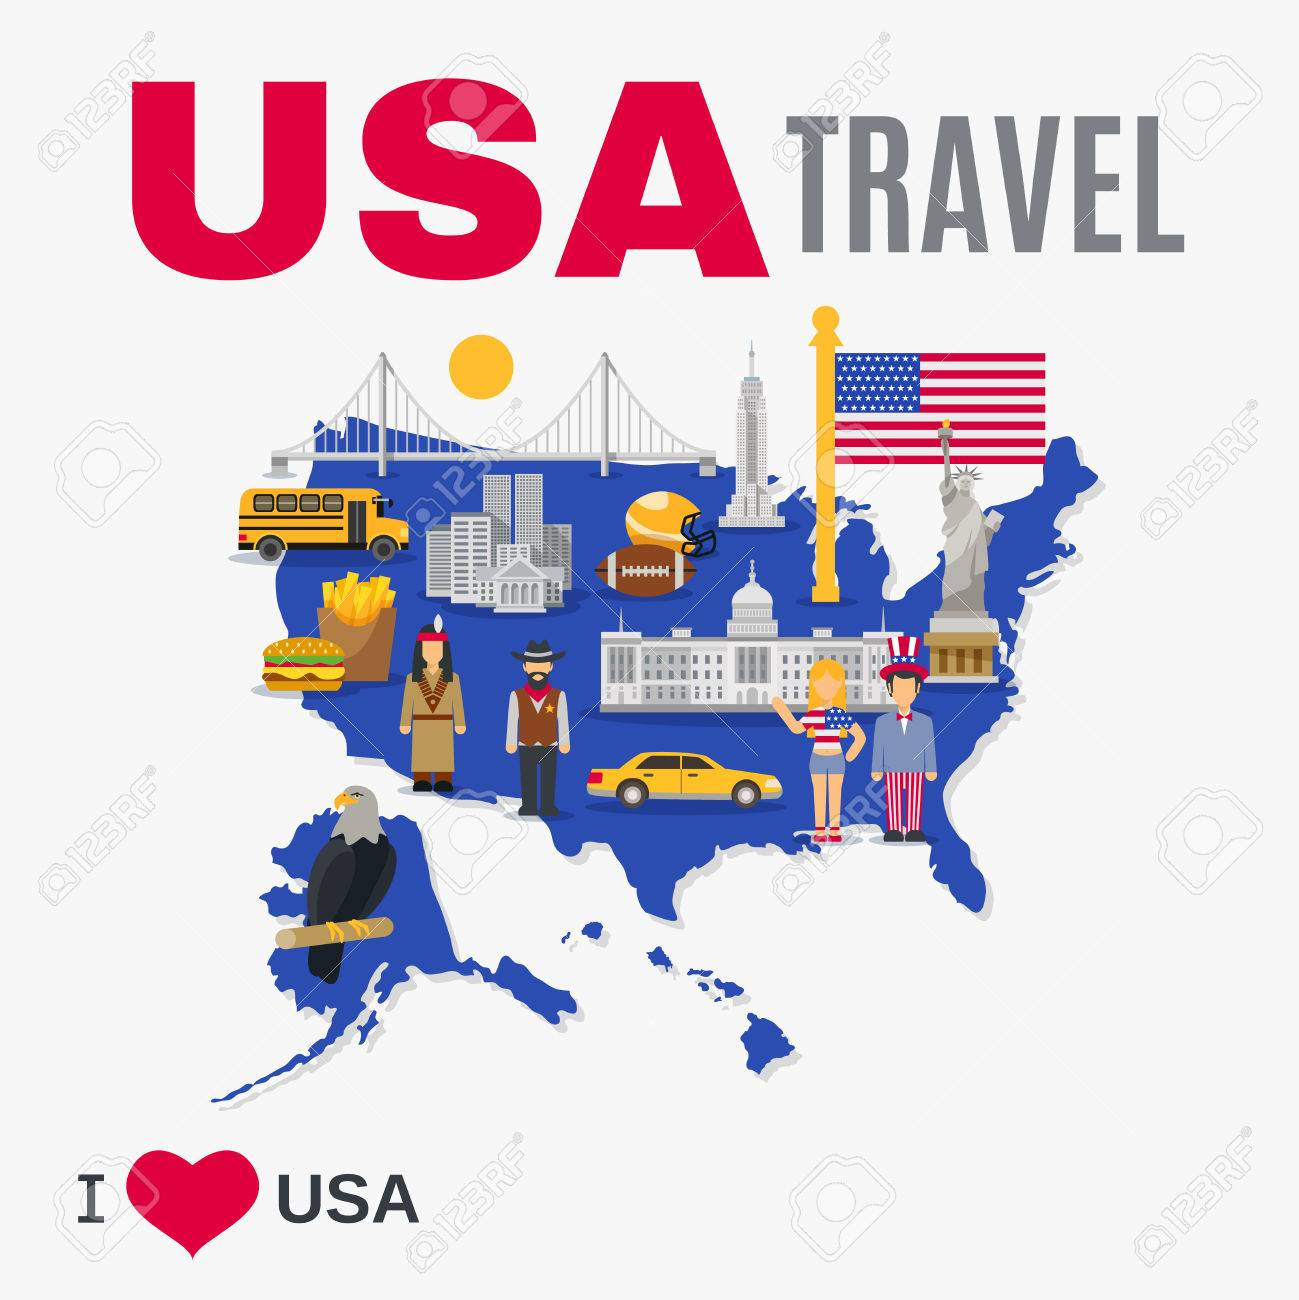 World Travel Agency USA Top Tourists Attraction Poster With - Usa map landmarks